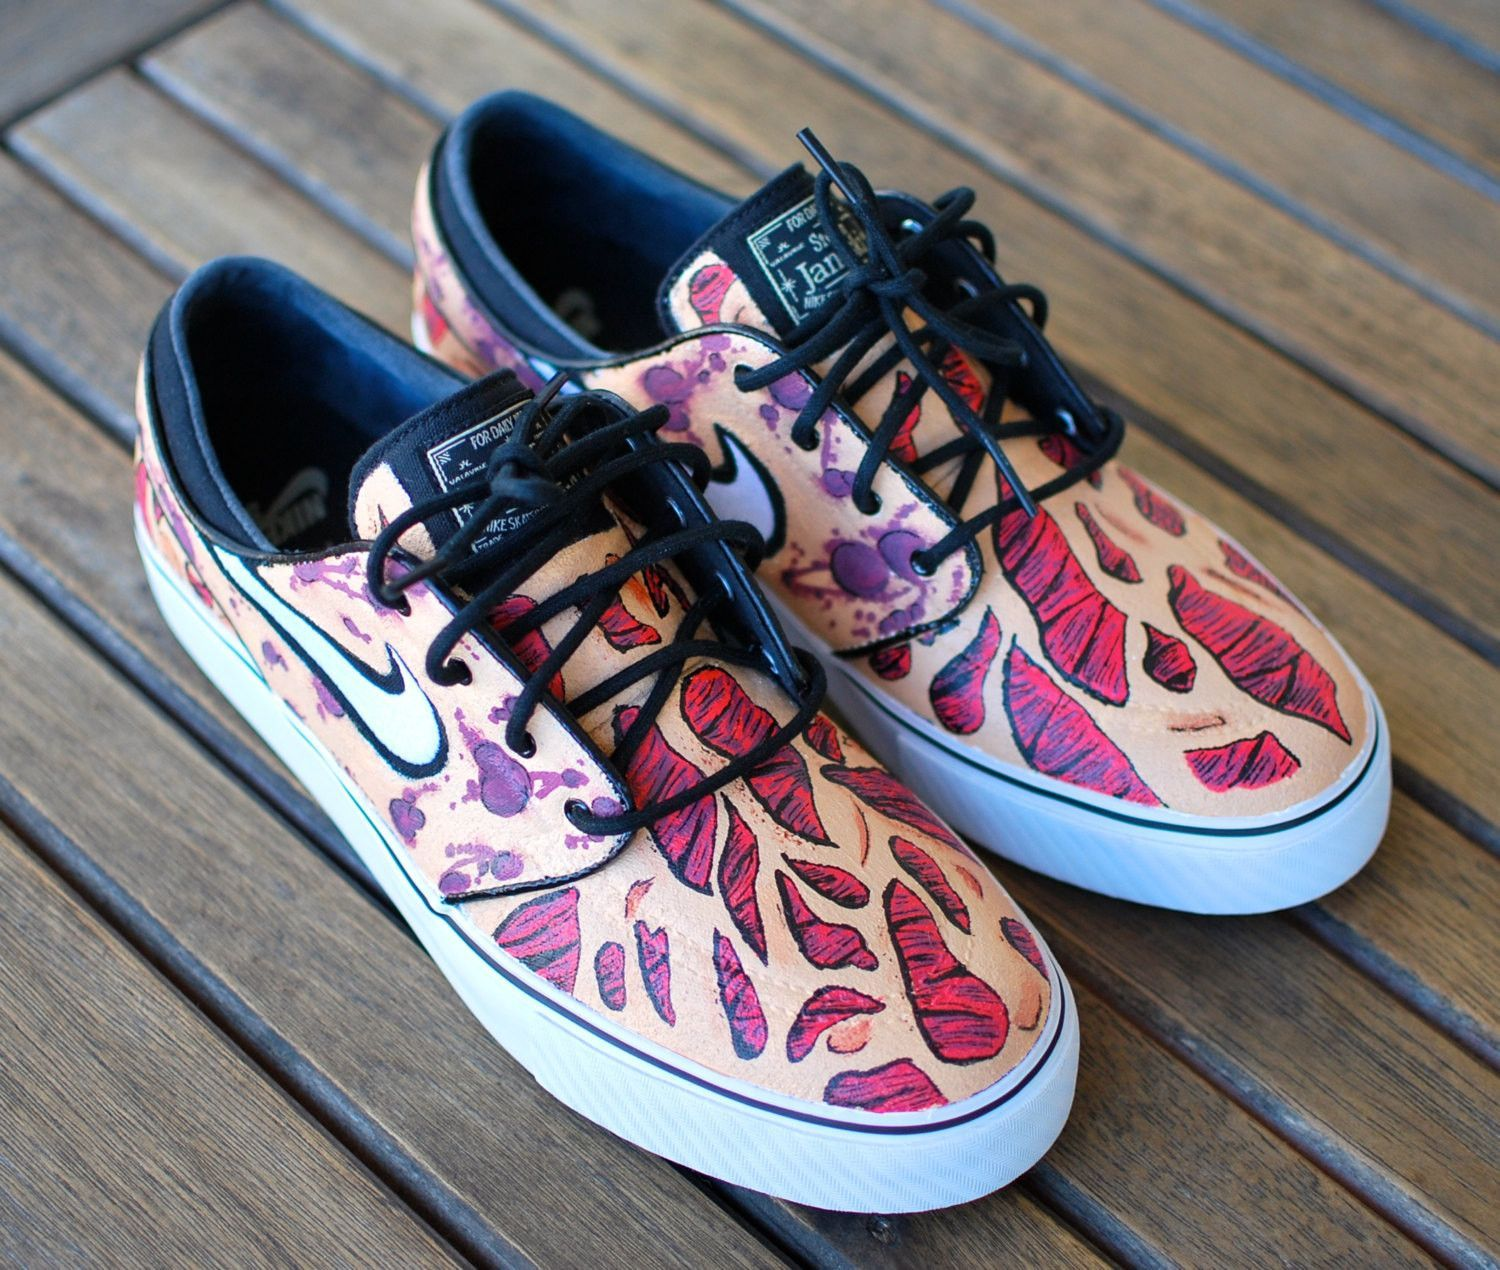 These Custom Nike Zoom Stefan Janoski skate shoes feature a burnt skin  pattern much like the face of Freddy Krueger. This order is customizable as  I can ... a865dac4c322